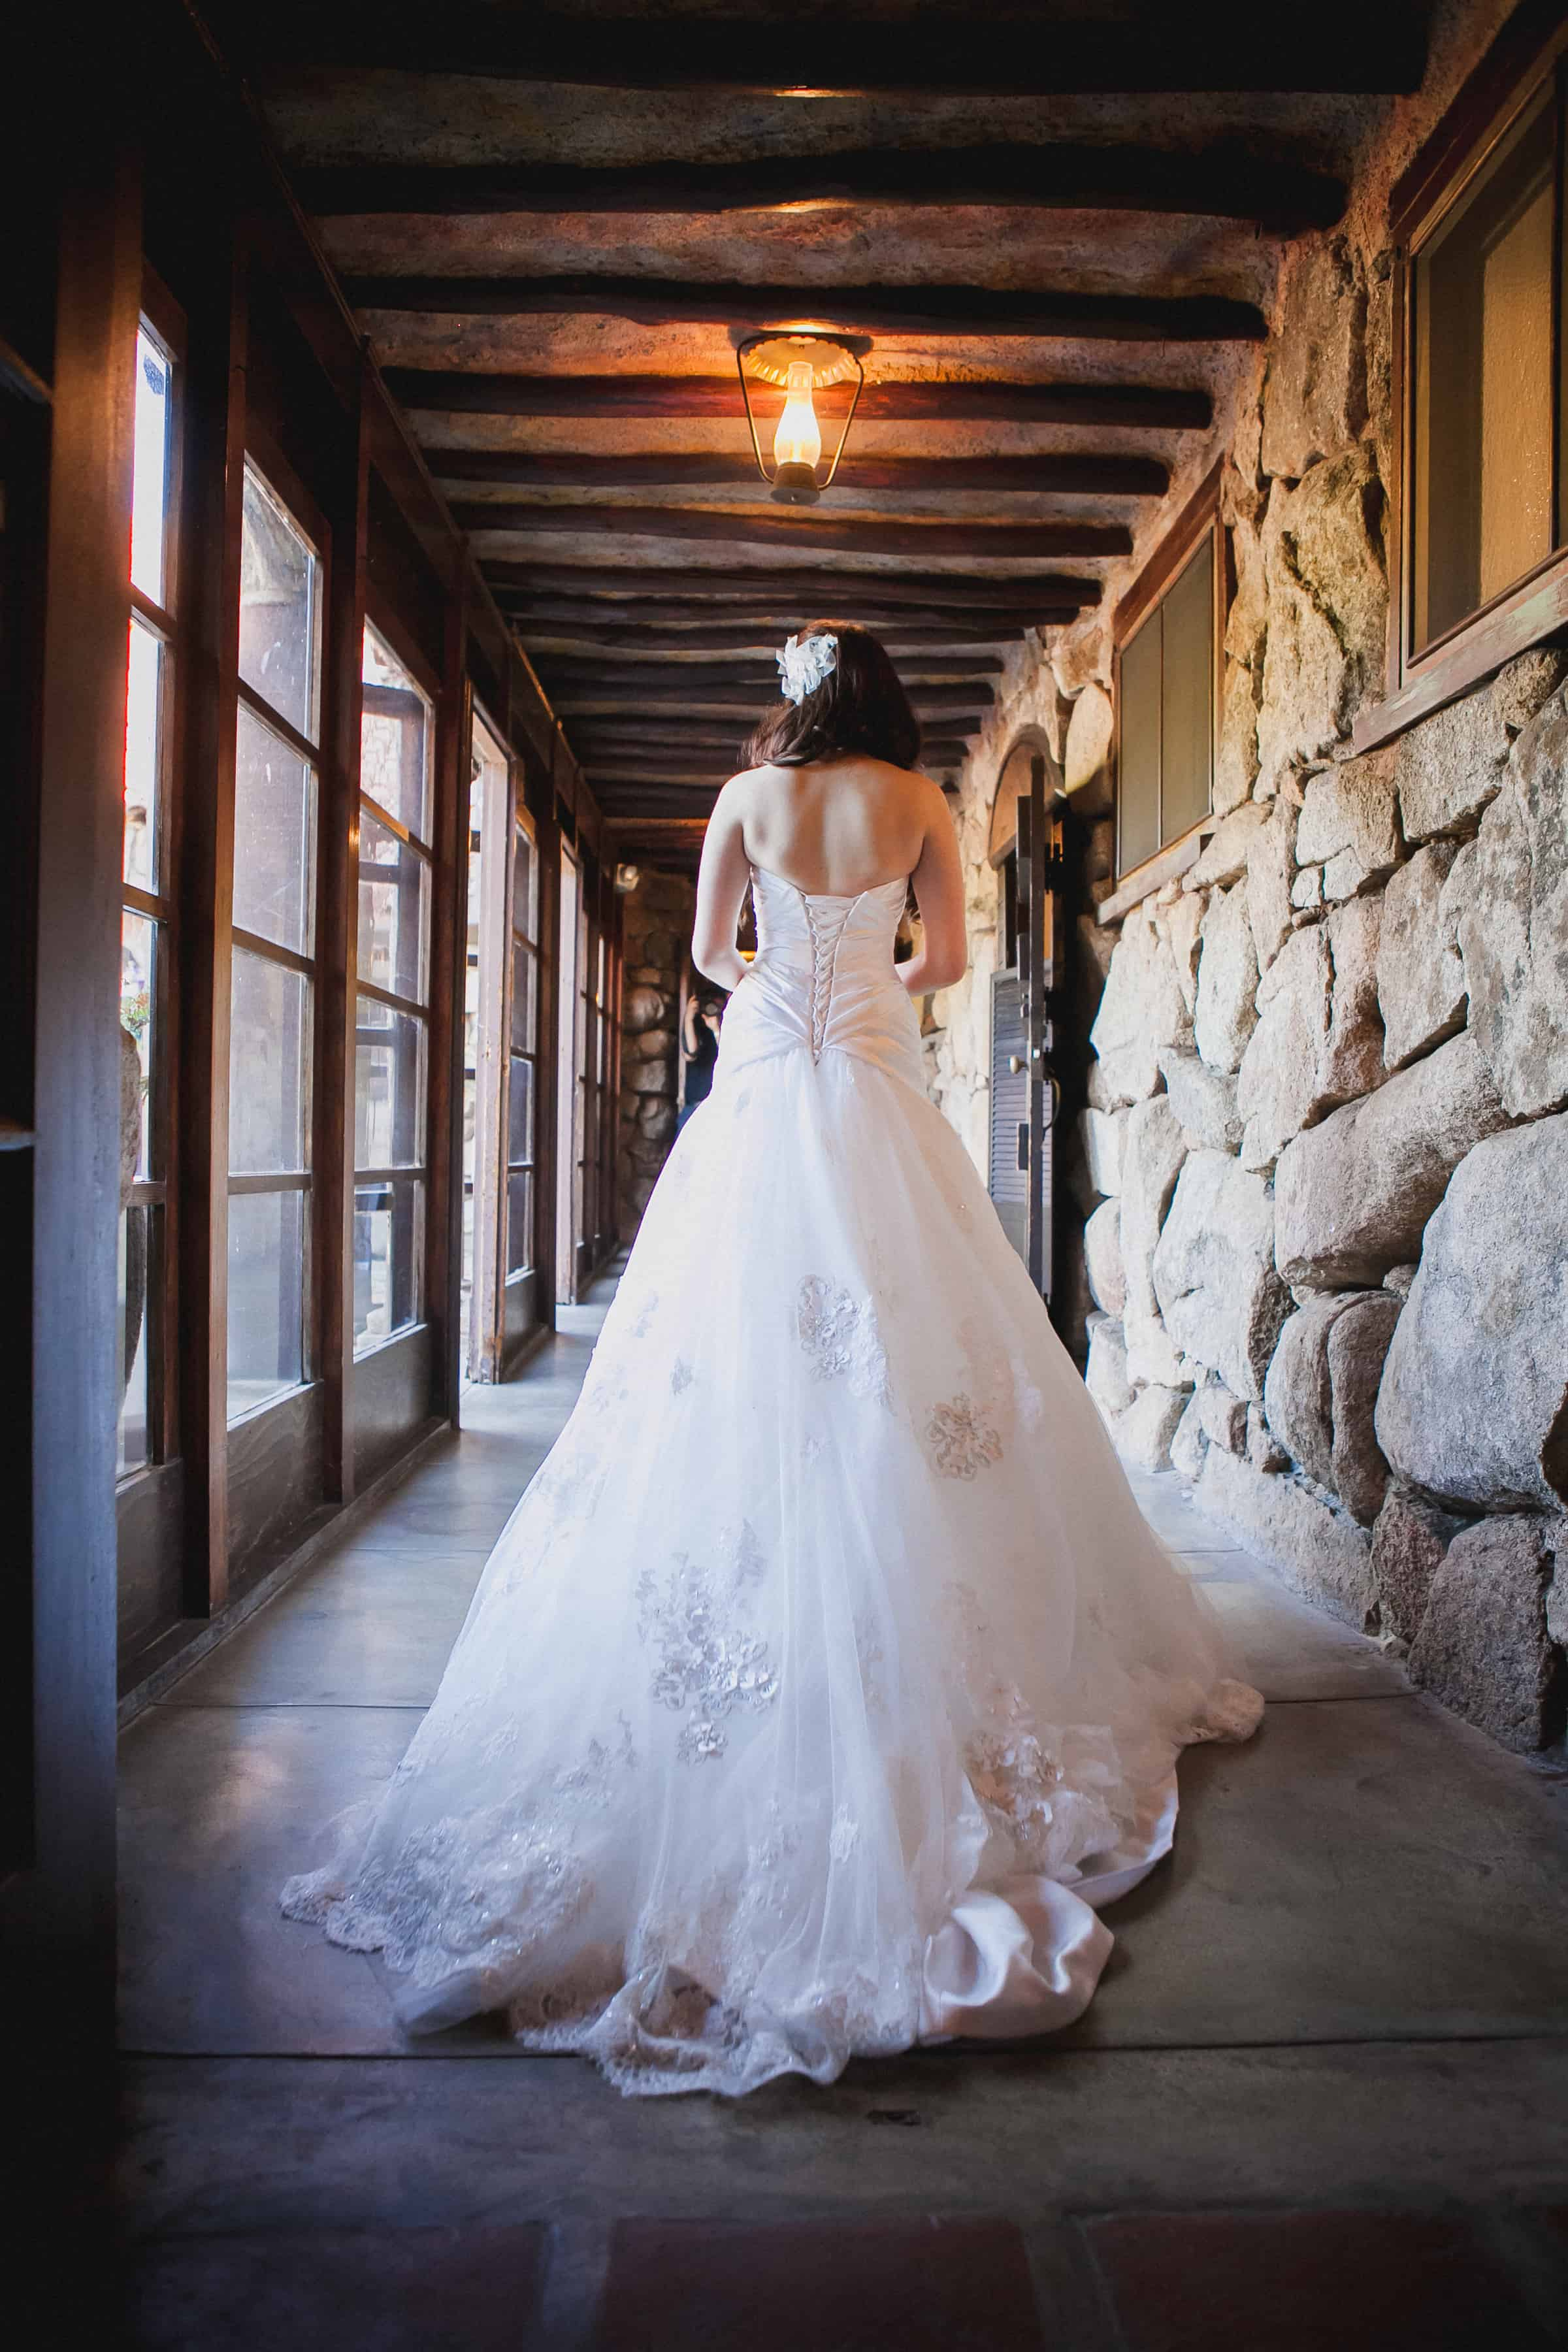 Bride in a white tulle wedding dress waiting to walk to the groom during the first look